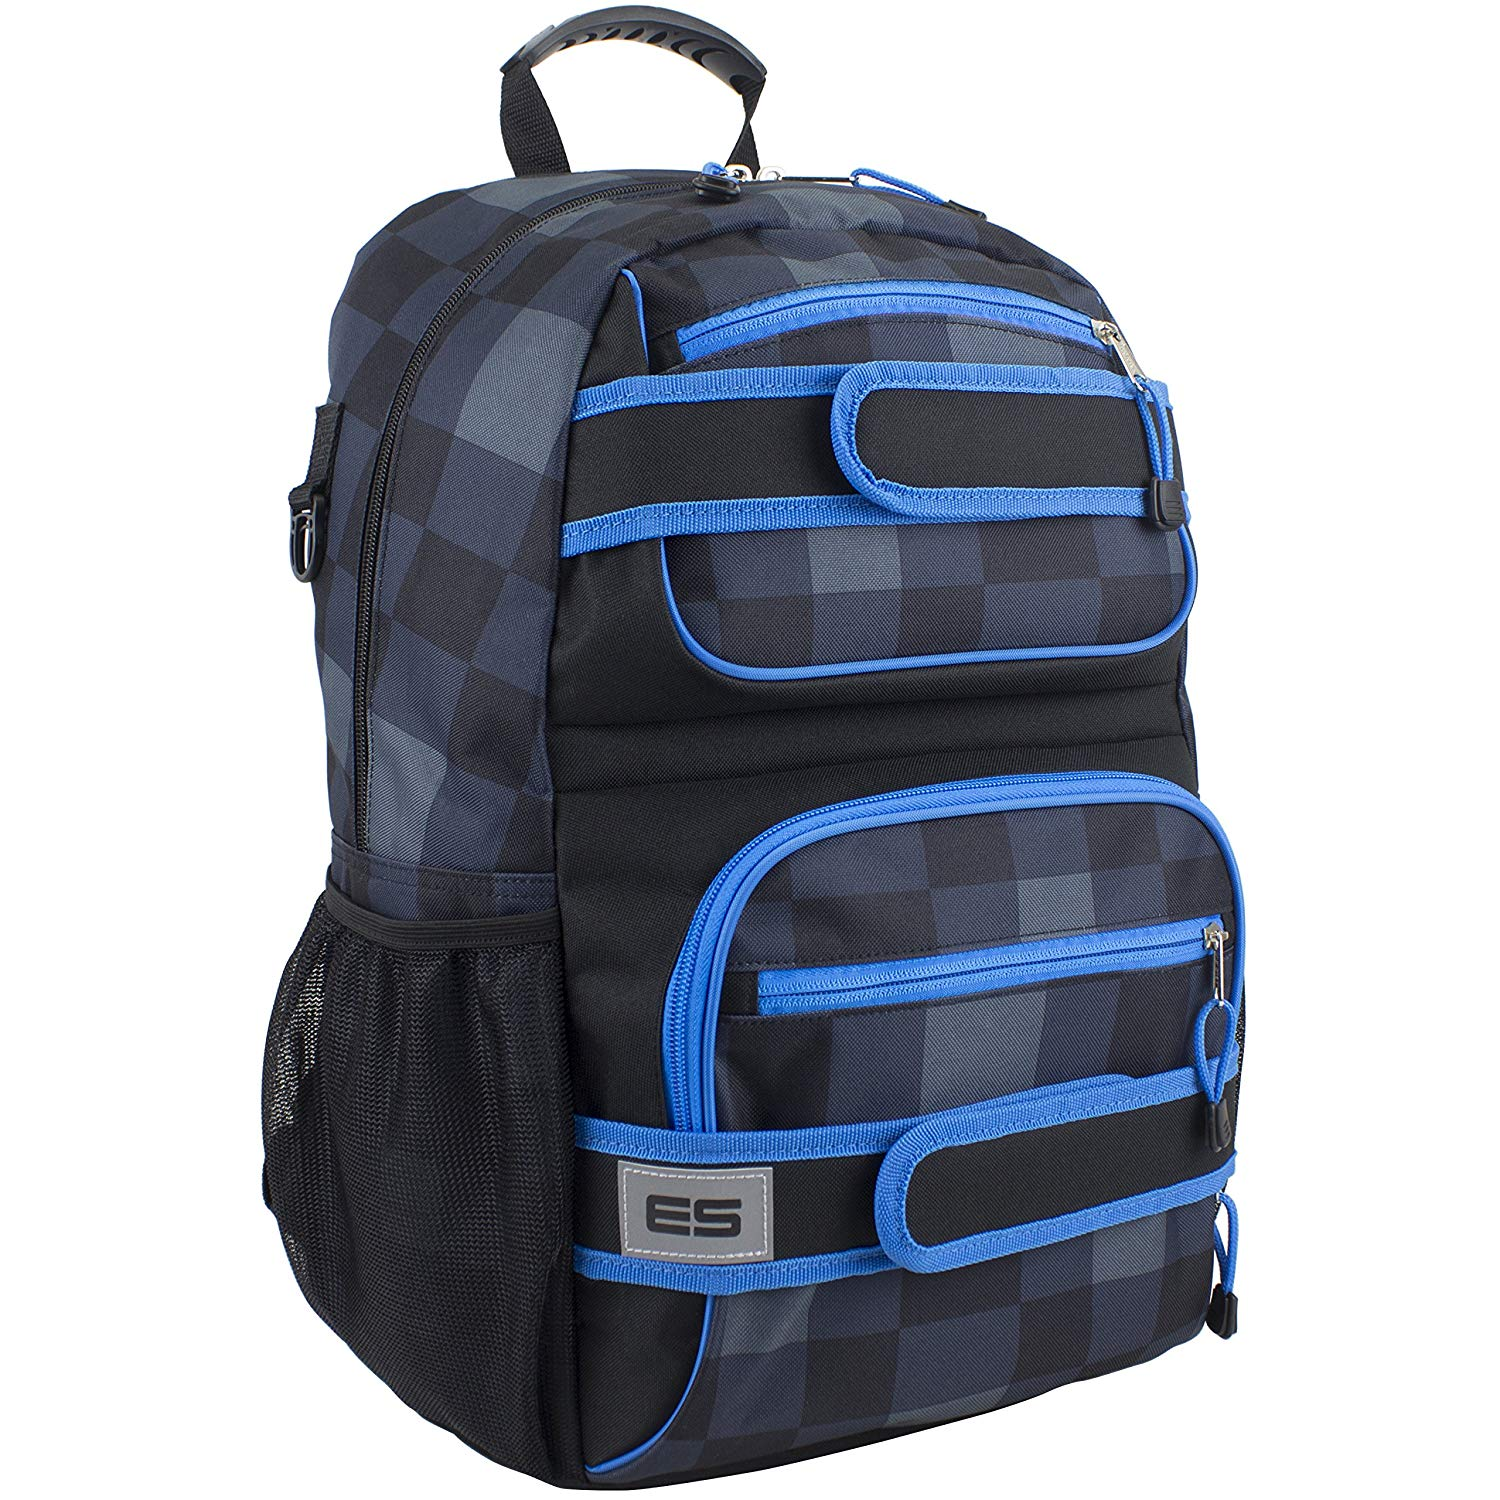 73ccd8ce9 Buy Creede Backpack Black Blue Plaid by trans by Jansport in Cheap ...